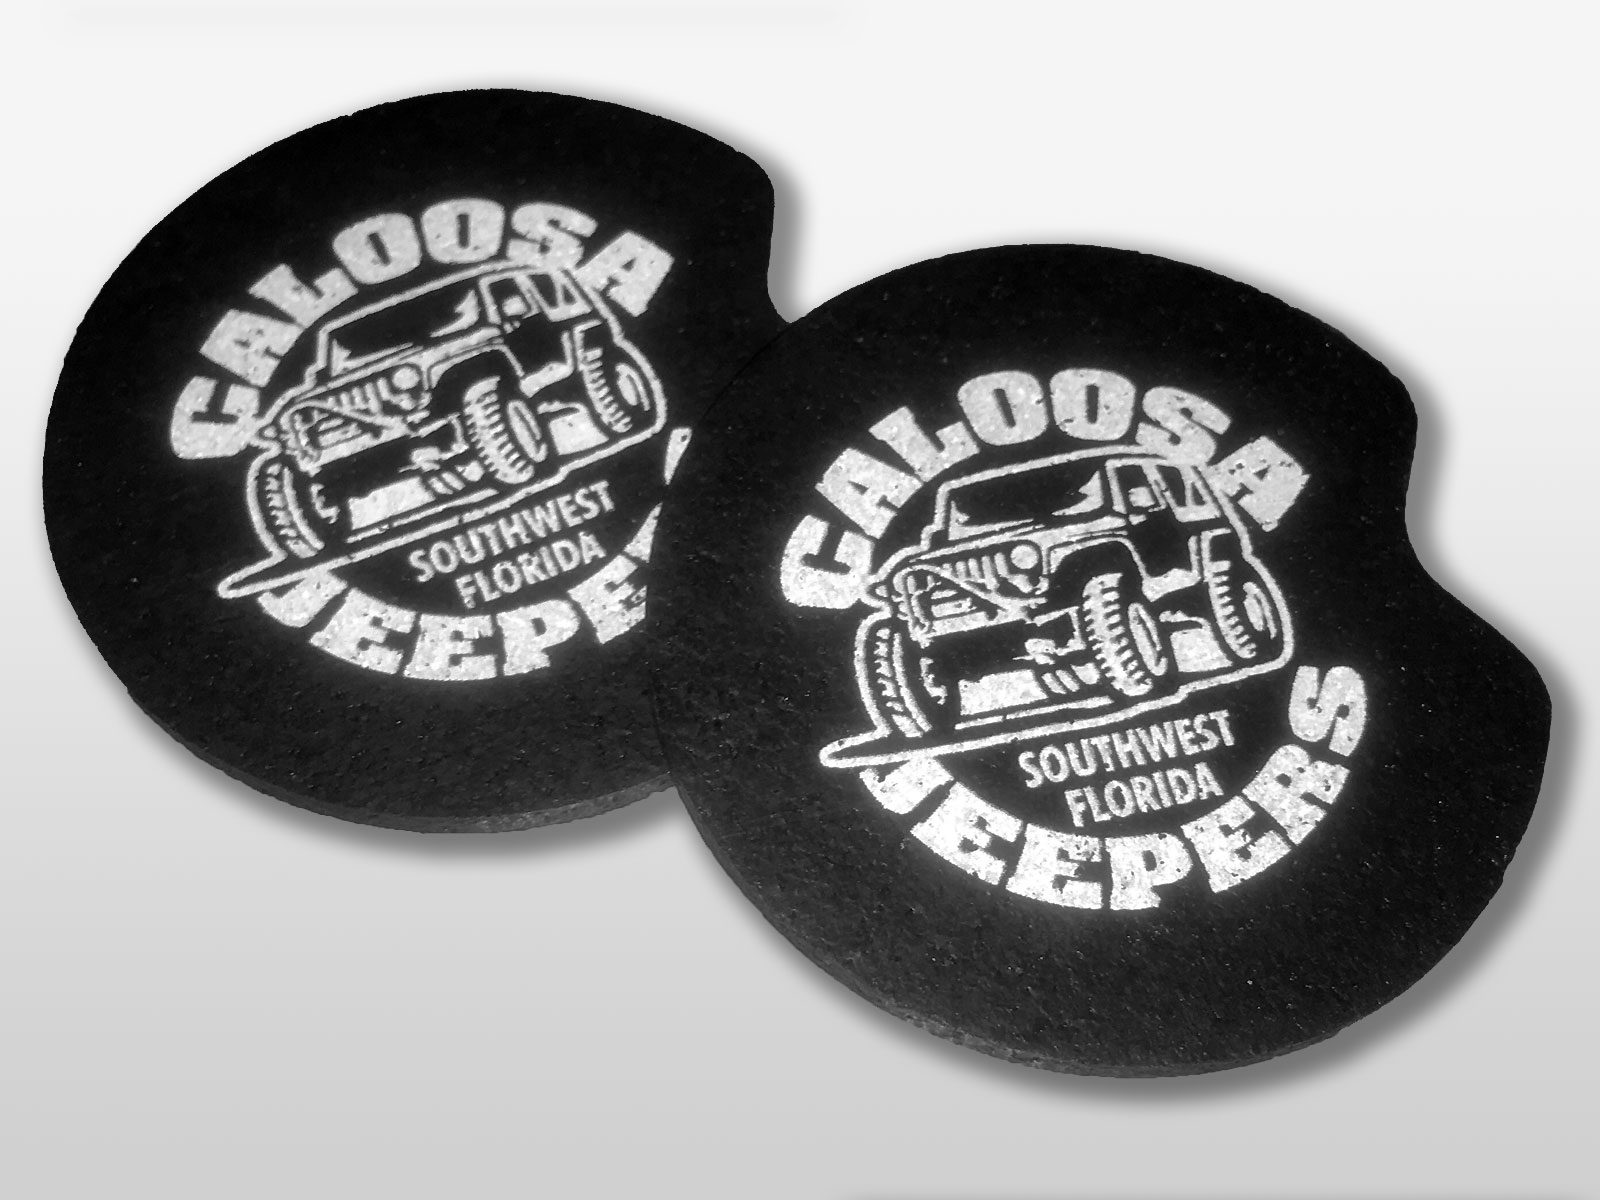 Caloosa Jeepers Cupholder Coasters